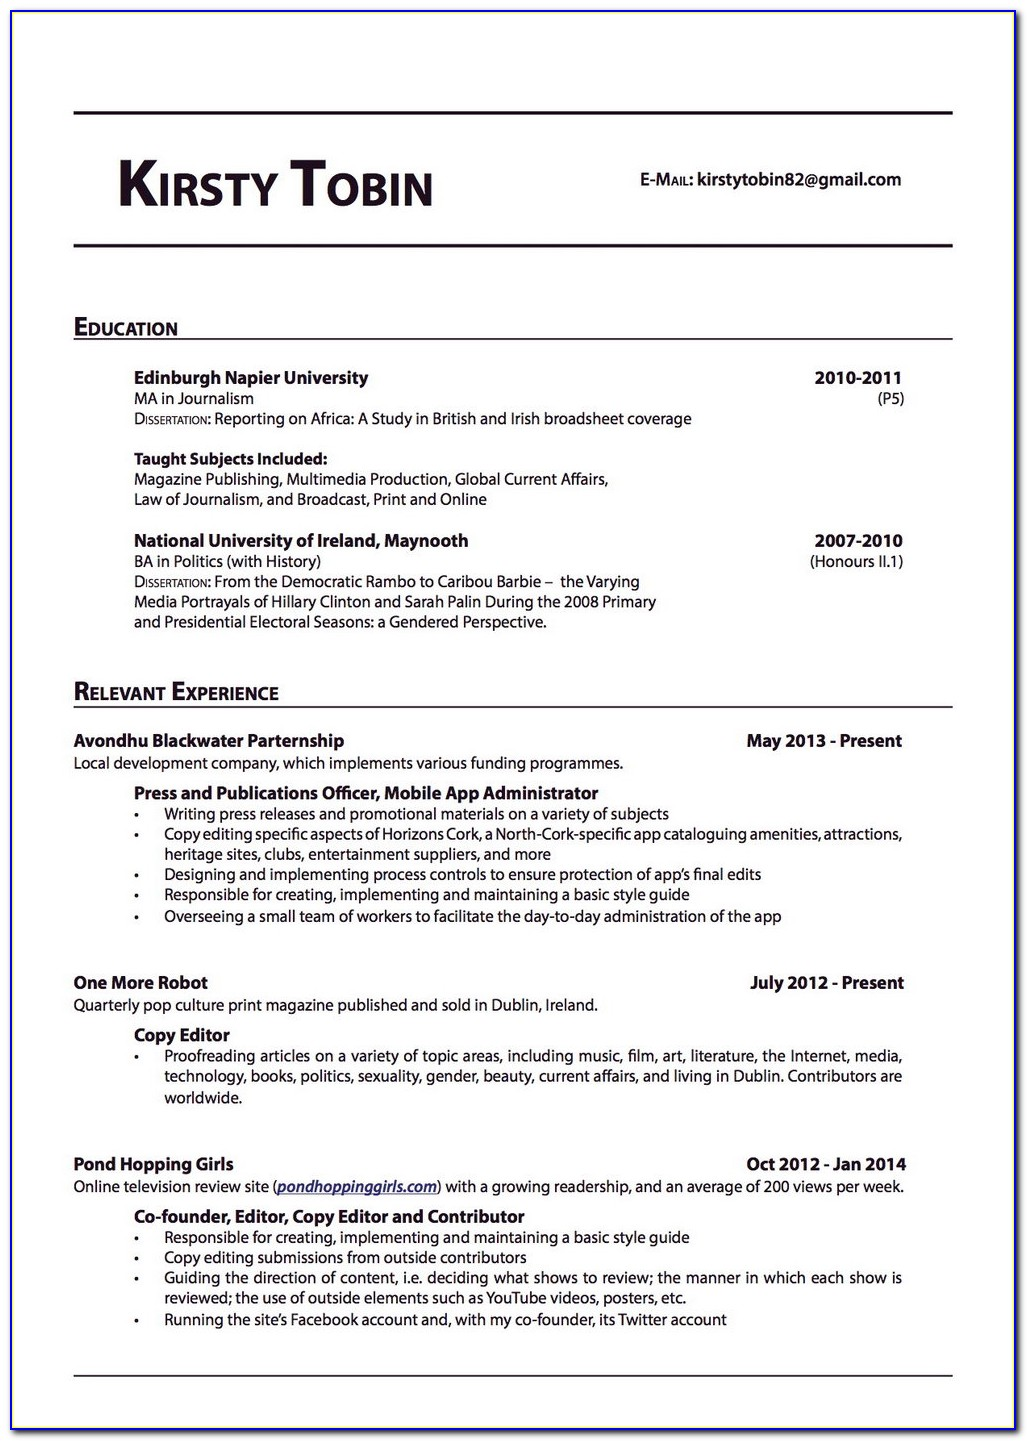 Resume Professional Writers Complaints